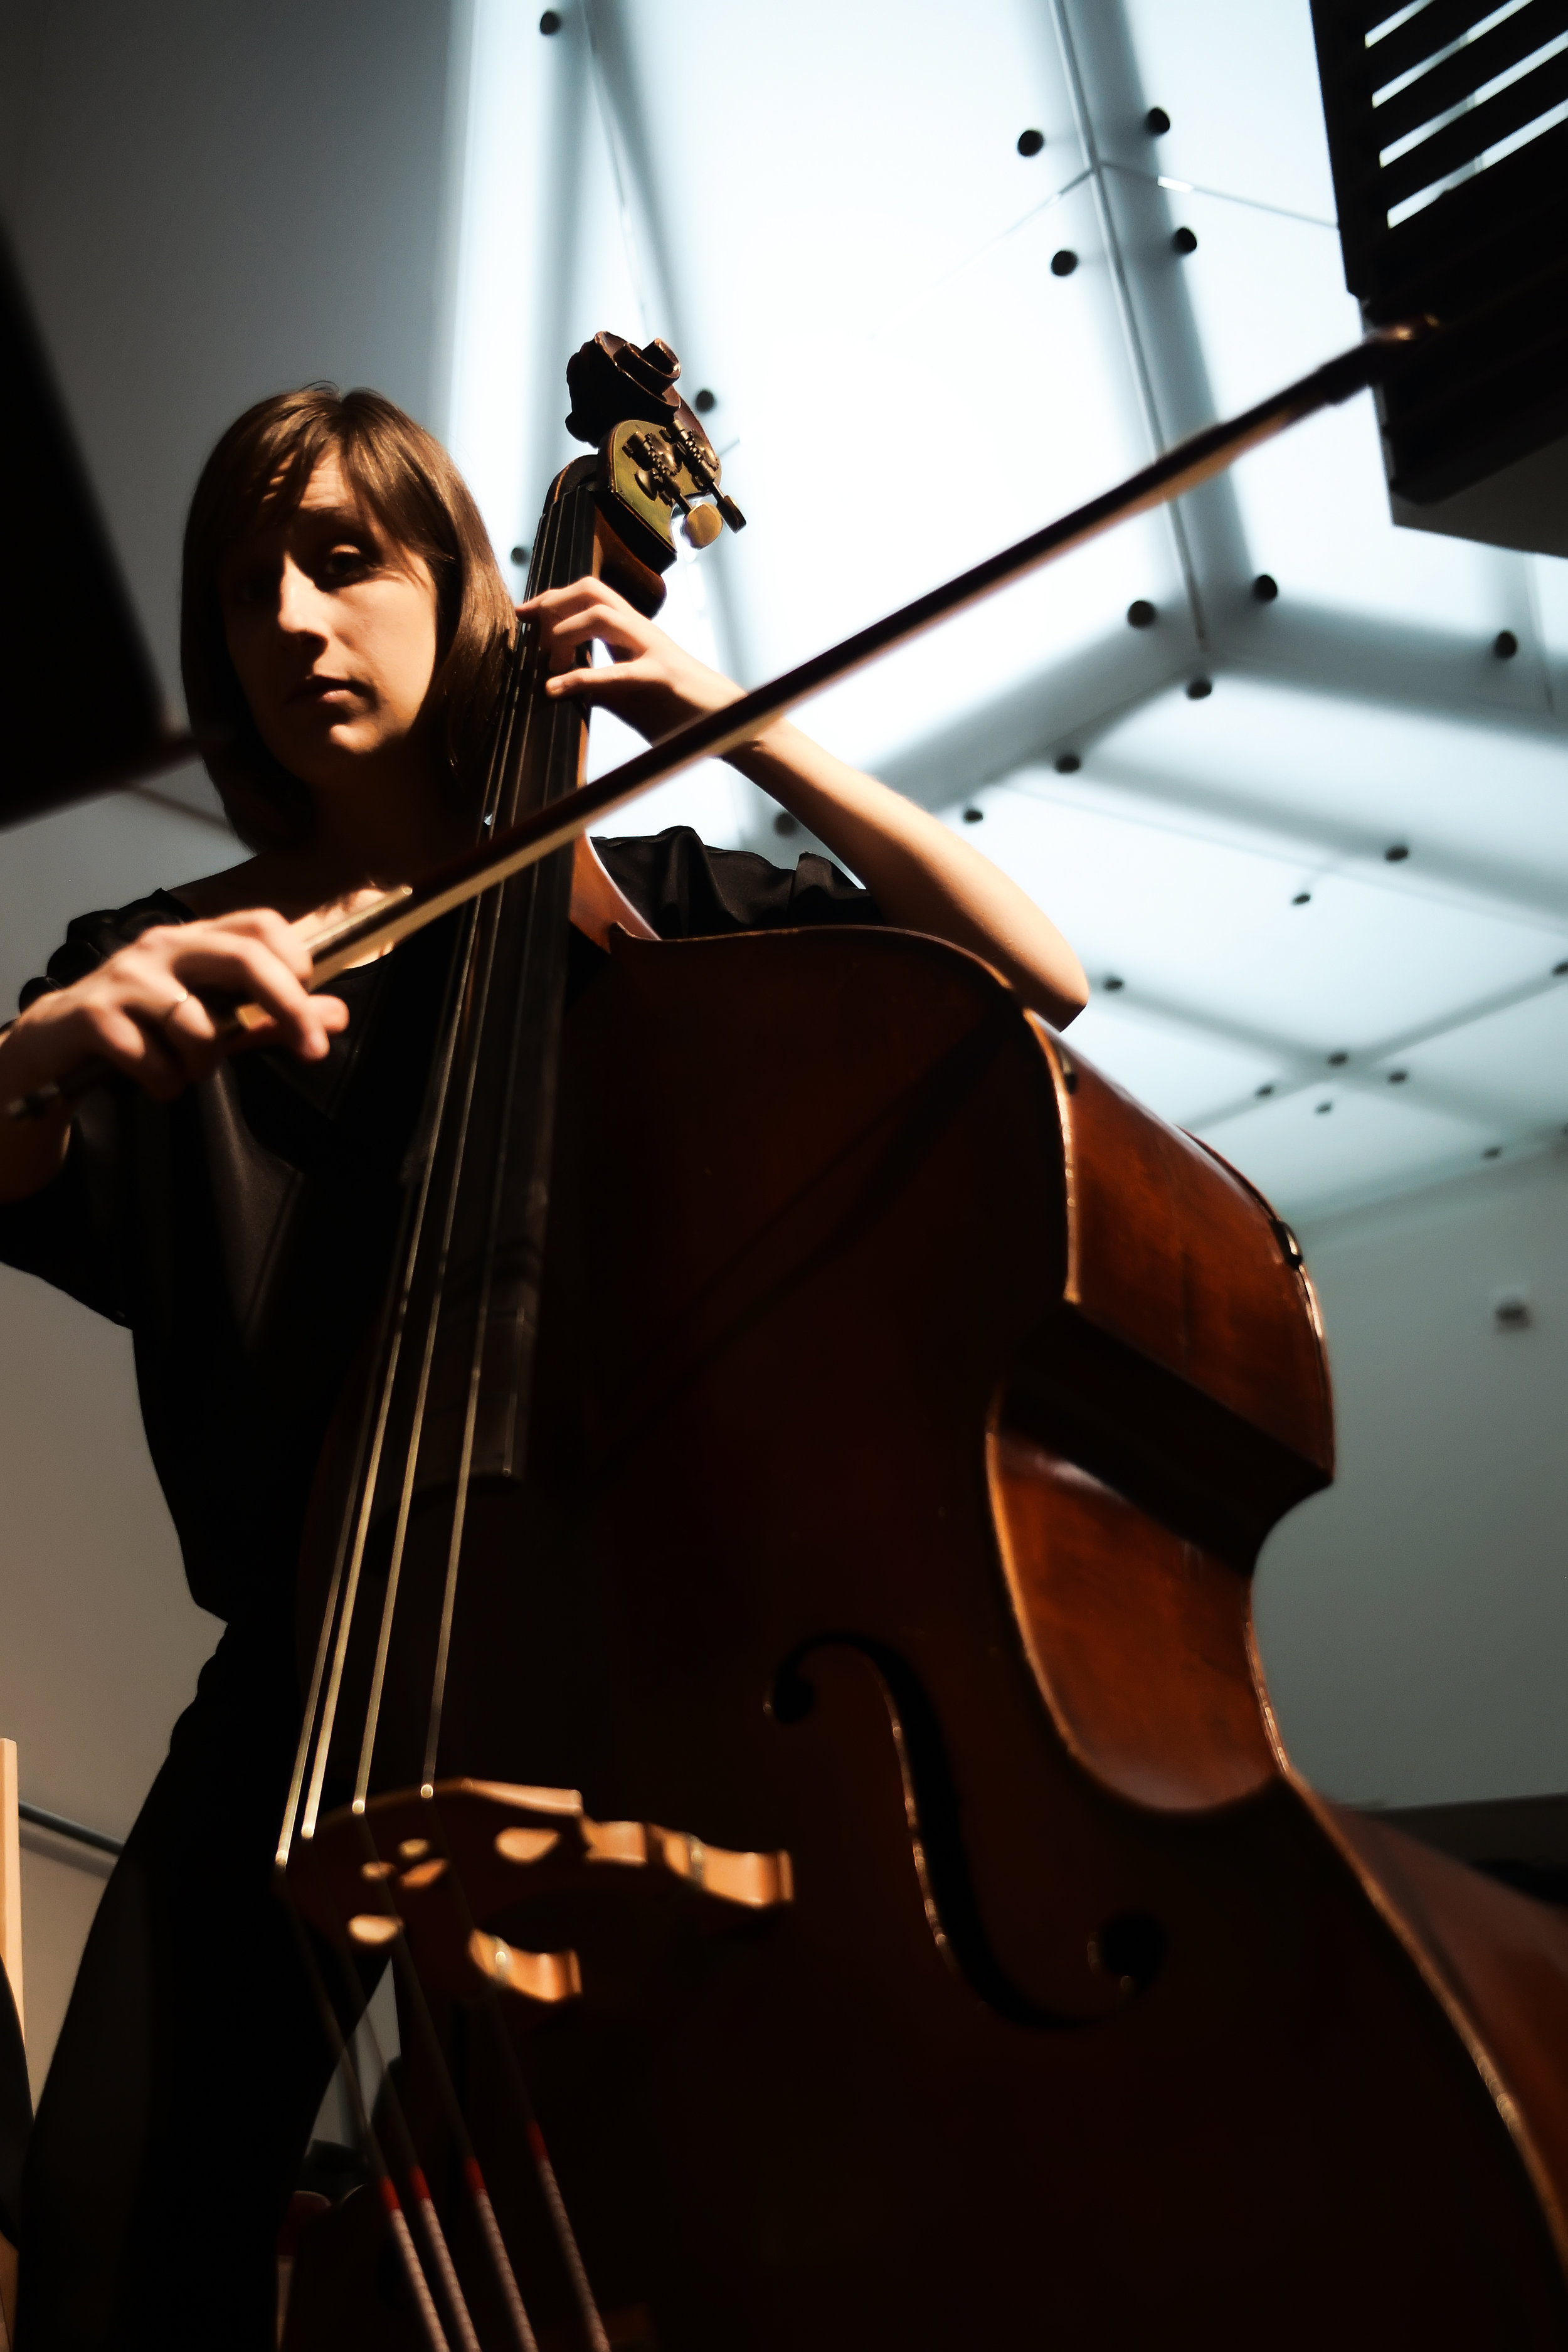 Jessica Powell Eig , bass  Jessica Powell Eig is a freelance musician based in Washington, DC, specializing in double bass, violone and viola da gamba. In the 2018-2019 season, she will appear with Washington Bach Consort, New Orchestra of Washington, American Bach Soloists, and Seraphic Fire, among others. In 2018 she joined the faculty of NOWsummer Festival & Retreat in Poolesville, MD, and Bennington Chamber Music Conference in Bennington, VT. In 2010, Jessica completed a DMA in double bass performance at SUNY-Stony Brook, studying with Joseph Carver and Kurt Muroki. She received her earlier training at Cincinnati College-Conservatory, the Eastman School of Music and The Juilliard School.